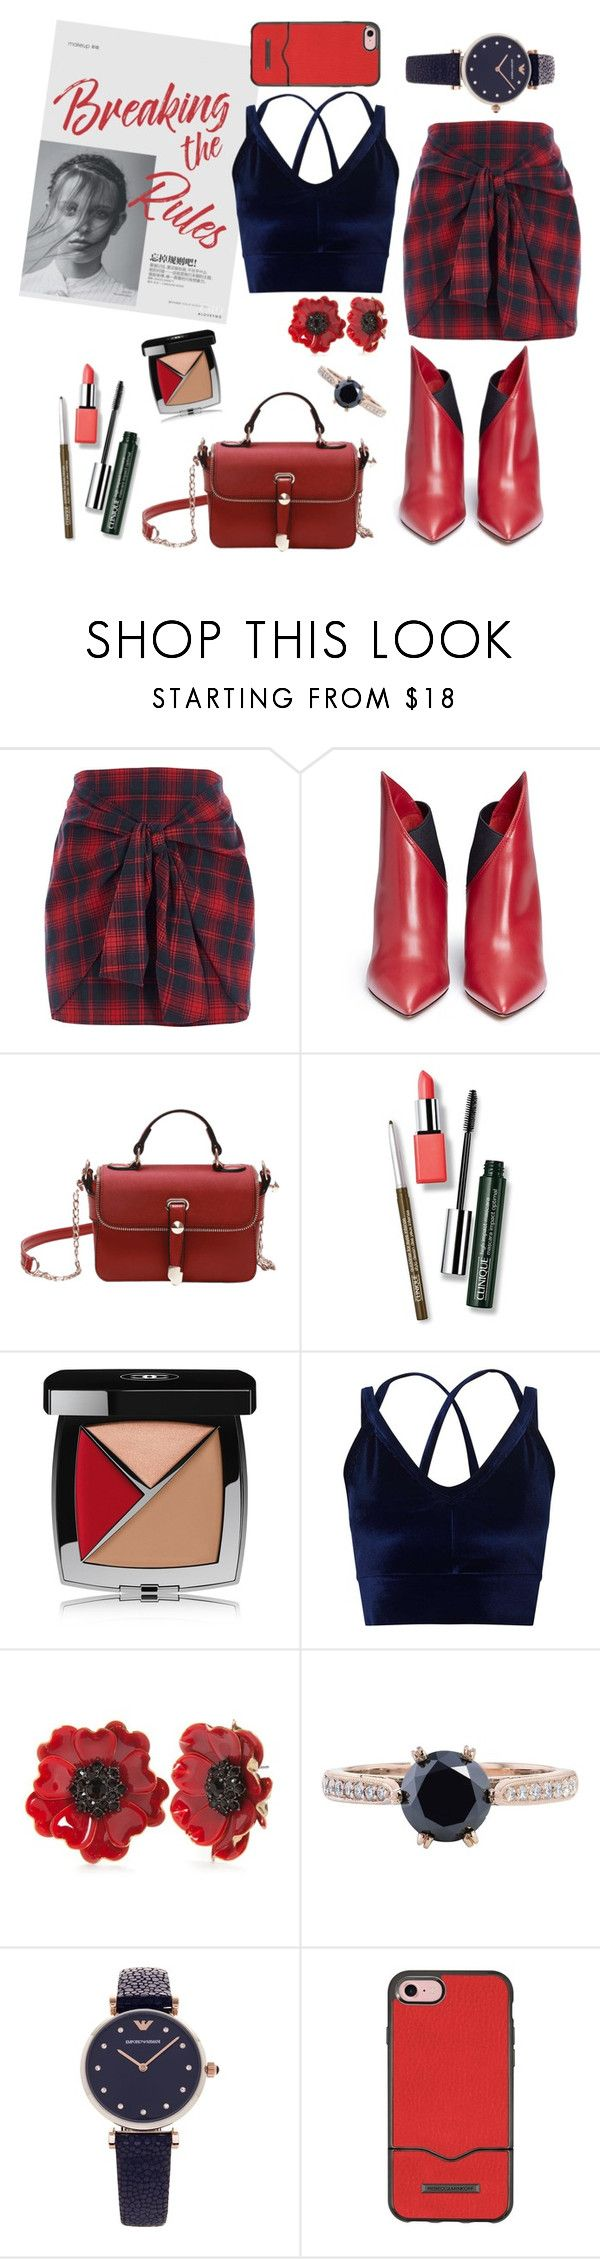 """Untitled #330"" by inesgenebra on Polyvore featuring River Island, Valentino, Clinique, Chanel, Miss Selfridge, Kate Spade, H&H, Emporio Armani and Rebecca Minkoff"